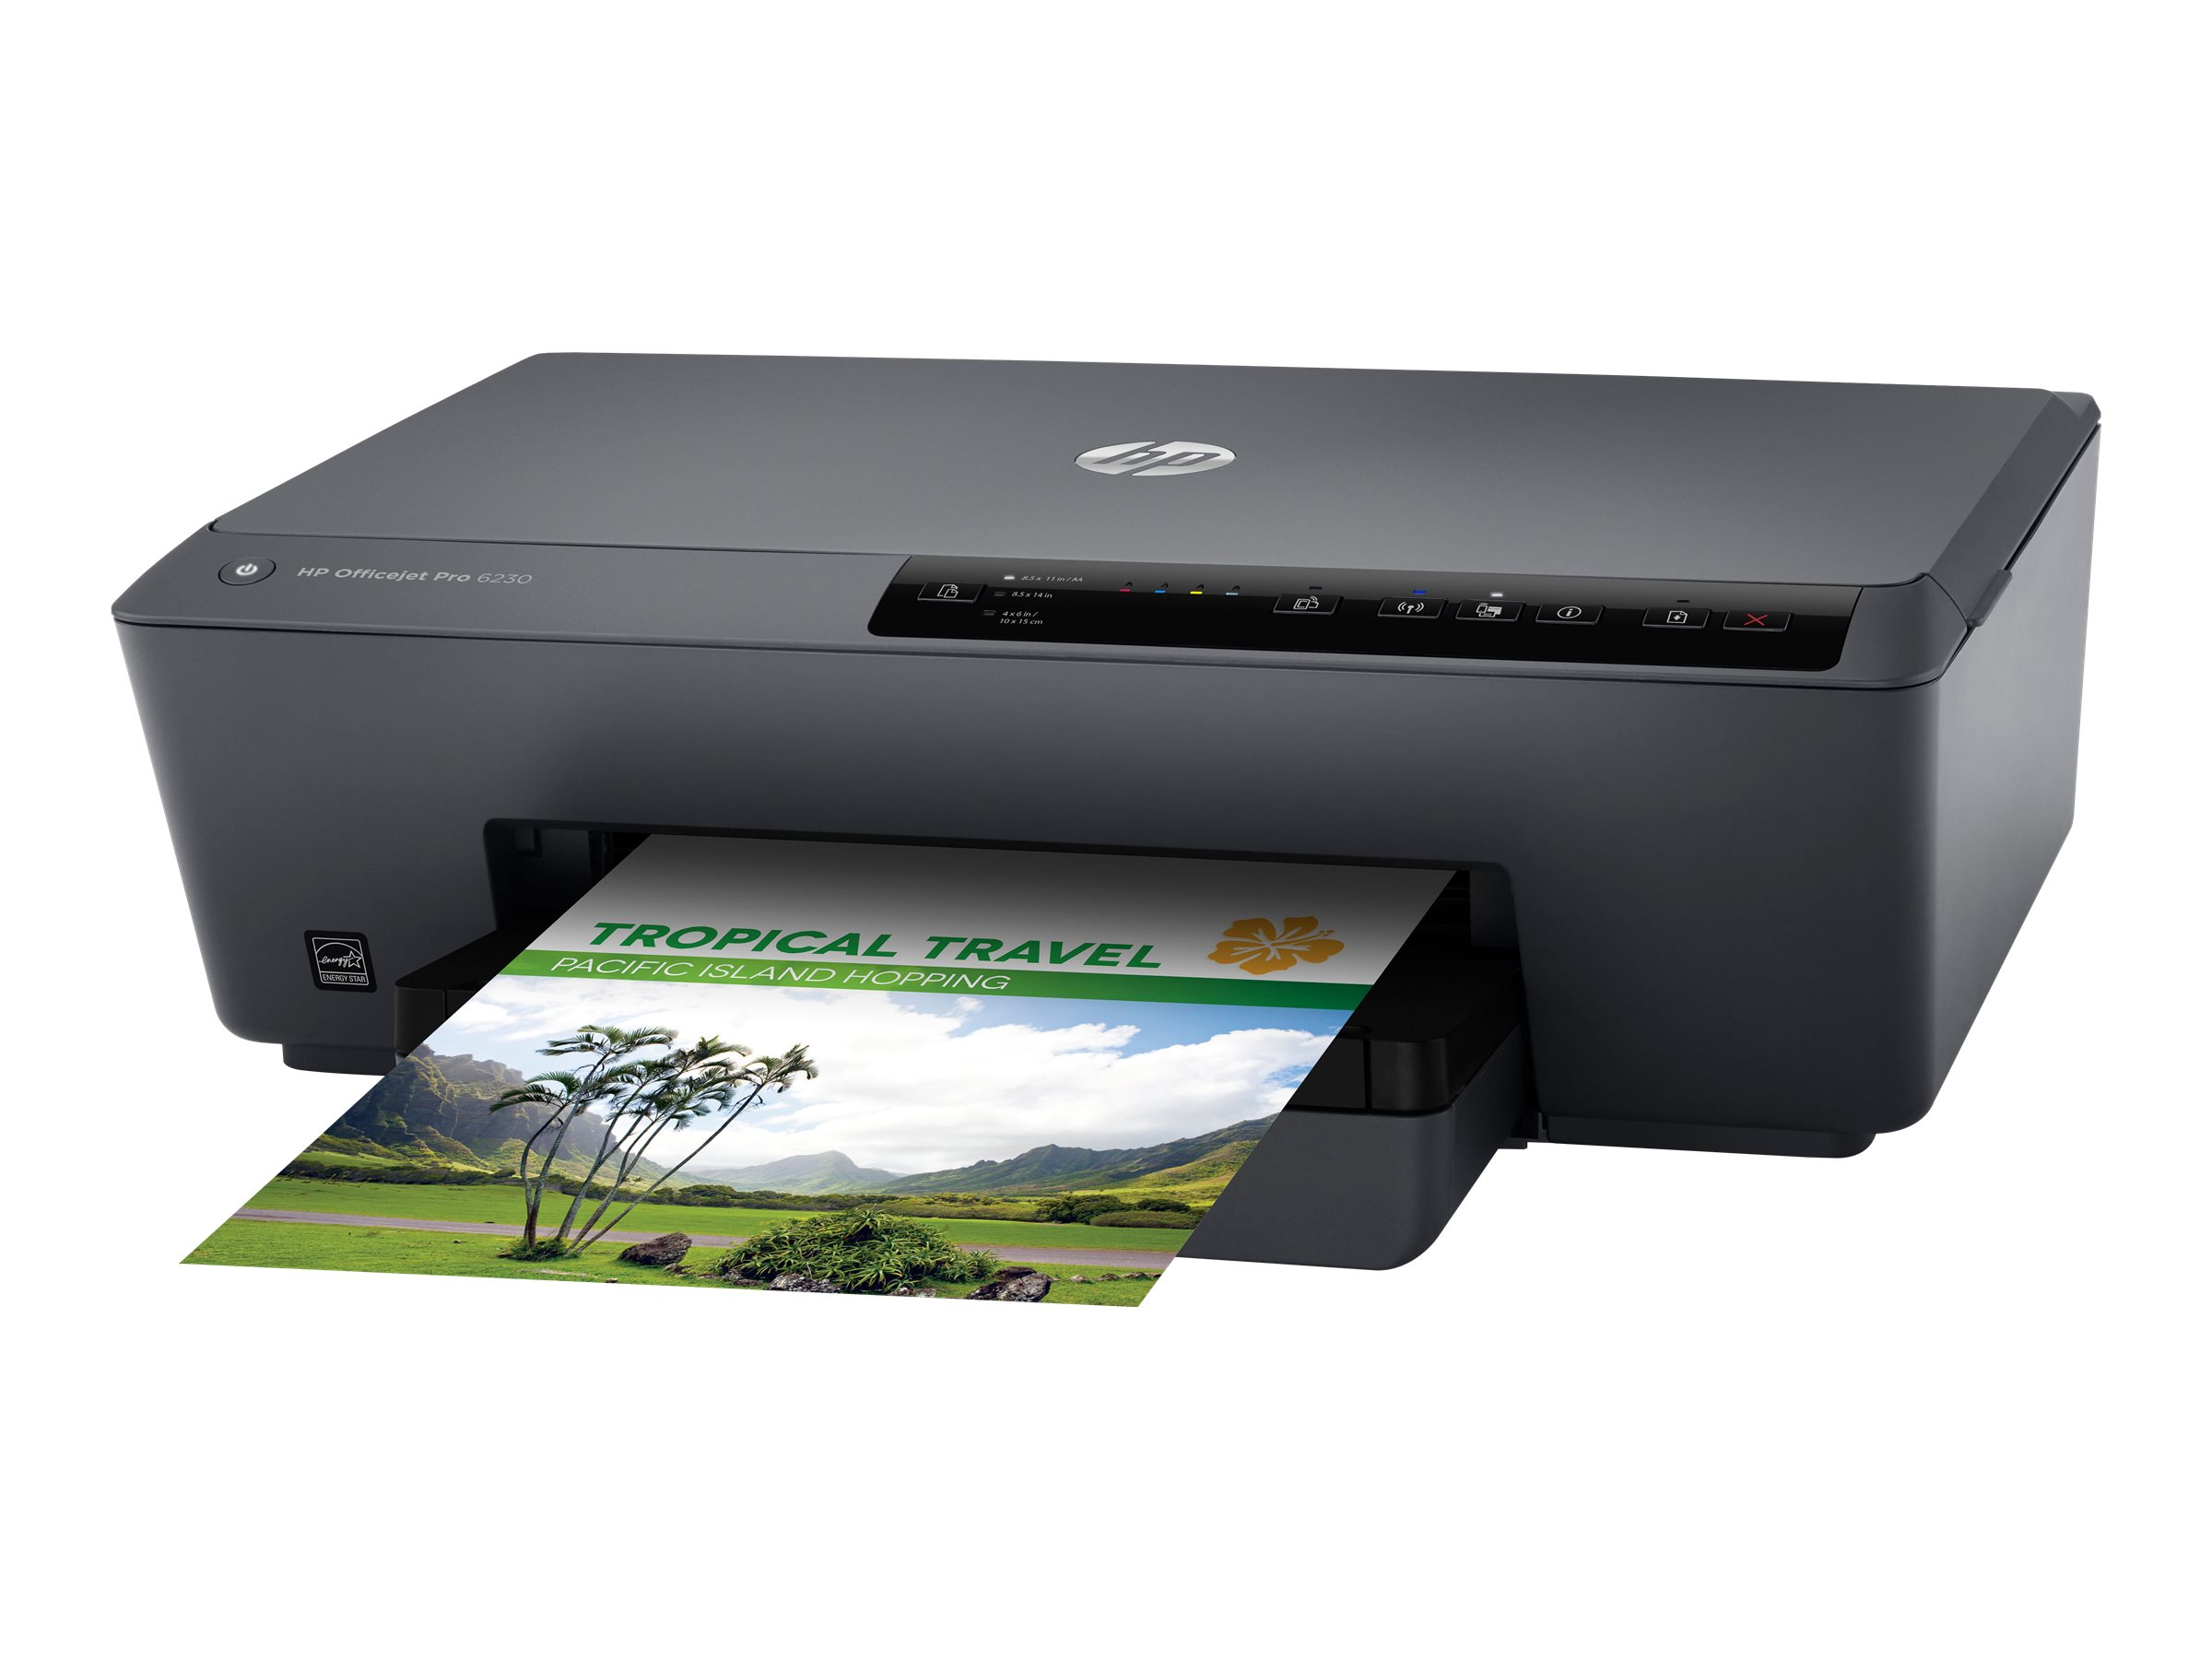 HP Officejet Pro 6230 ePrinter - printer - color - ink-jet